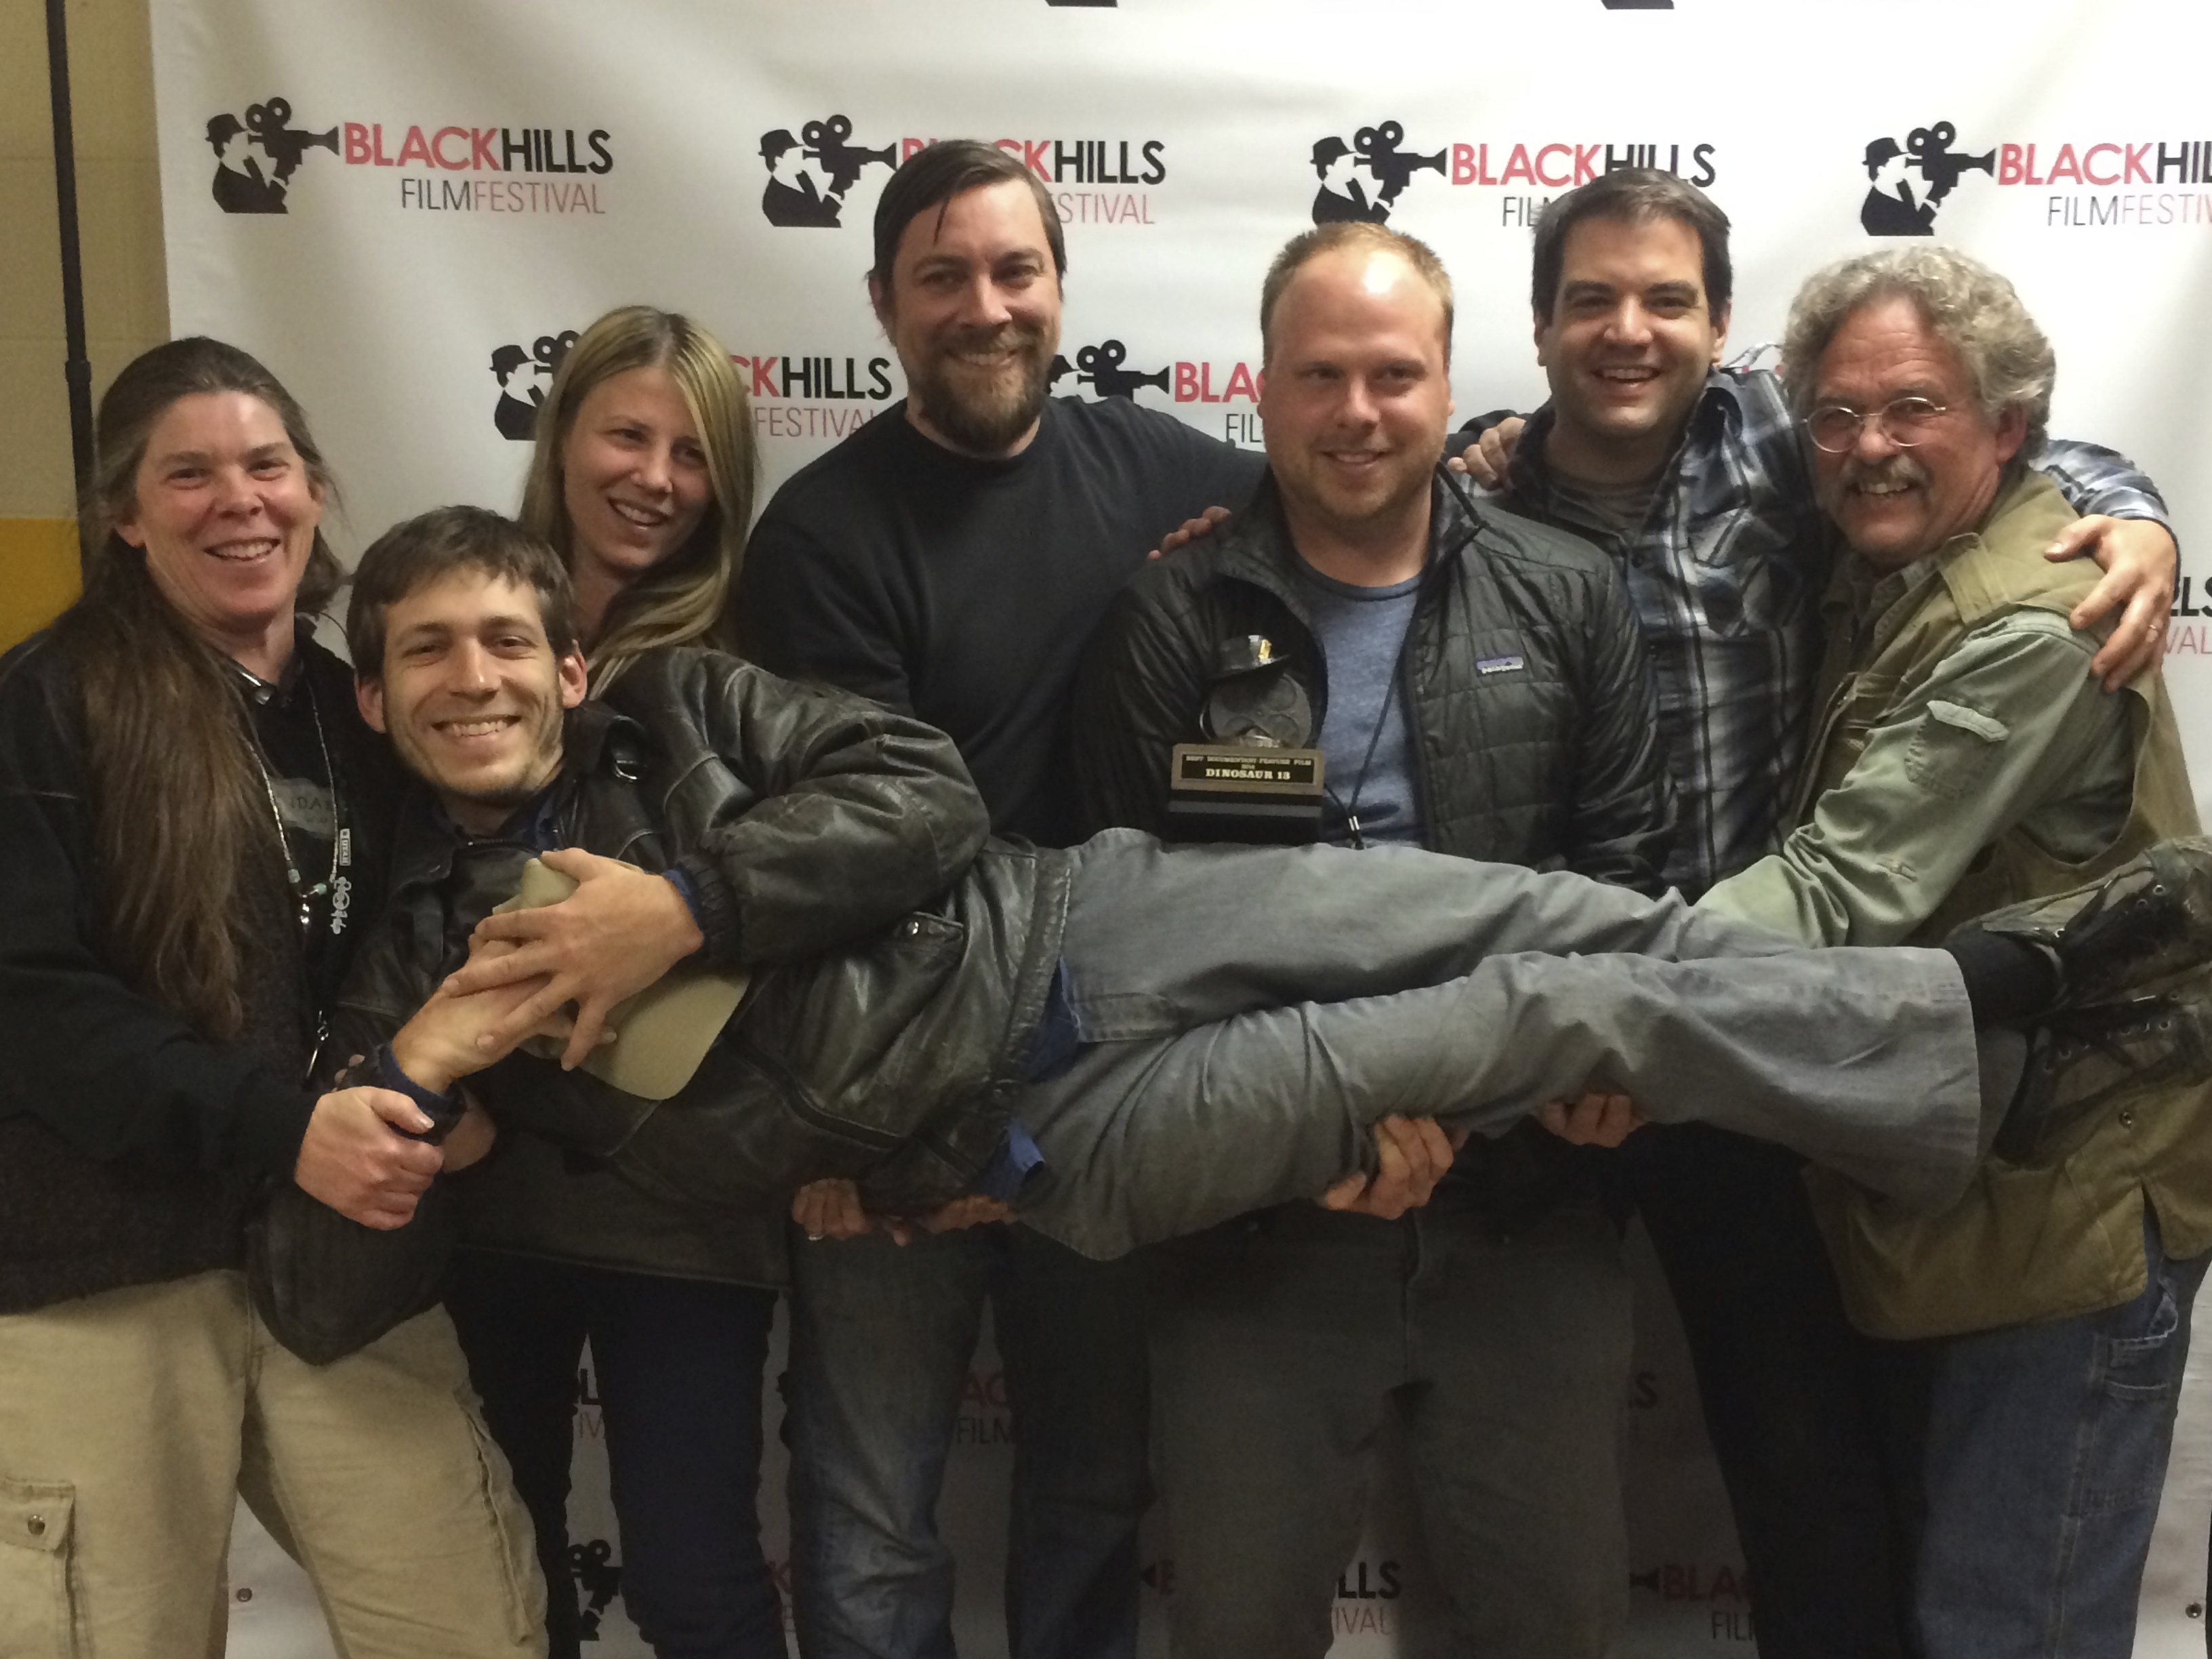 Black Hills Film Fest - the team.